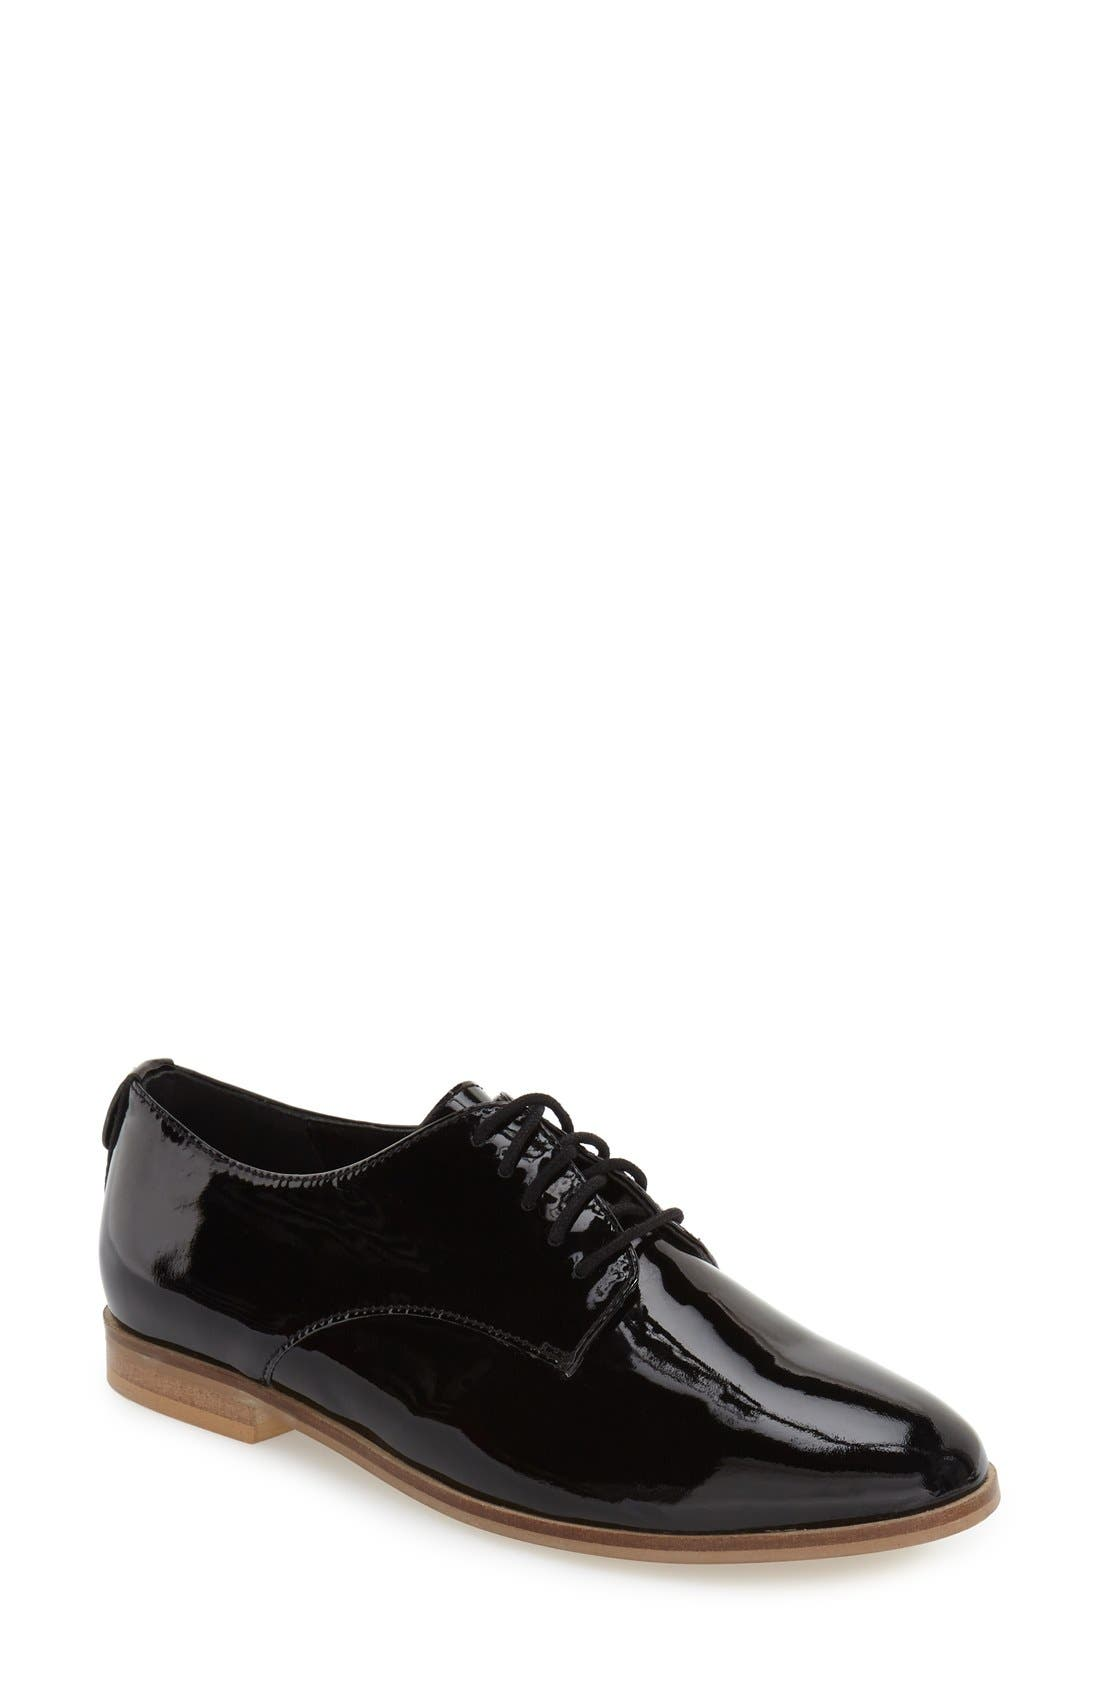 'Flossy' Patent Leather Oxford,                         Main,                         color, 005